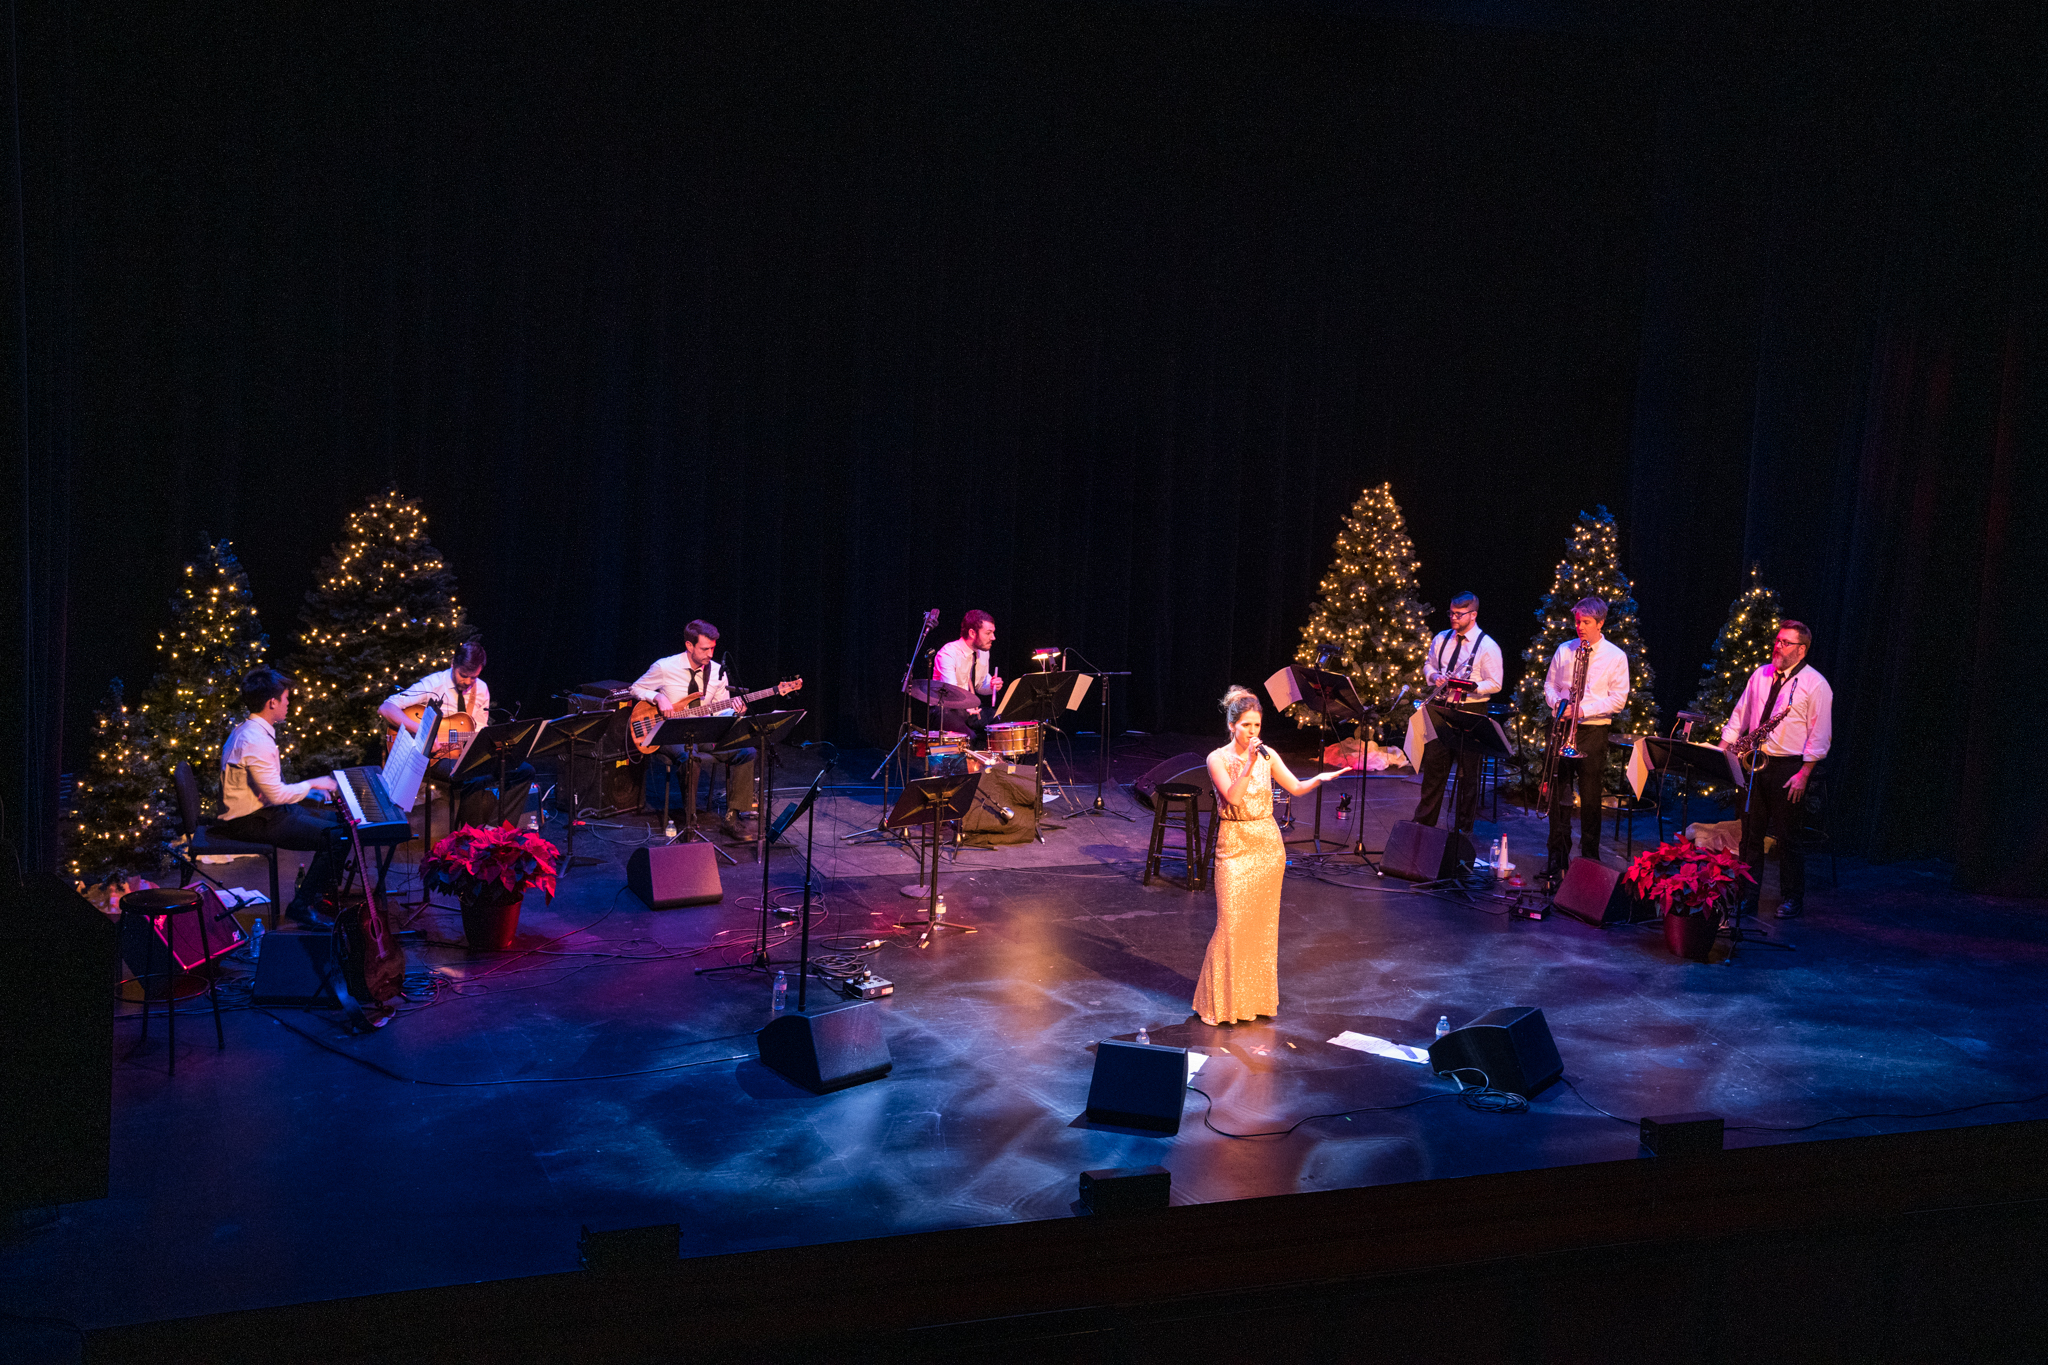 The 2nd Annual A Michelle Kasaboski Christmas I December 16, 2018 I The Grand Theatre